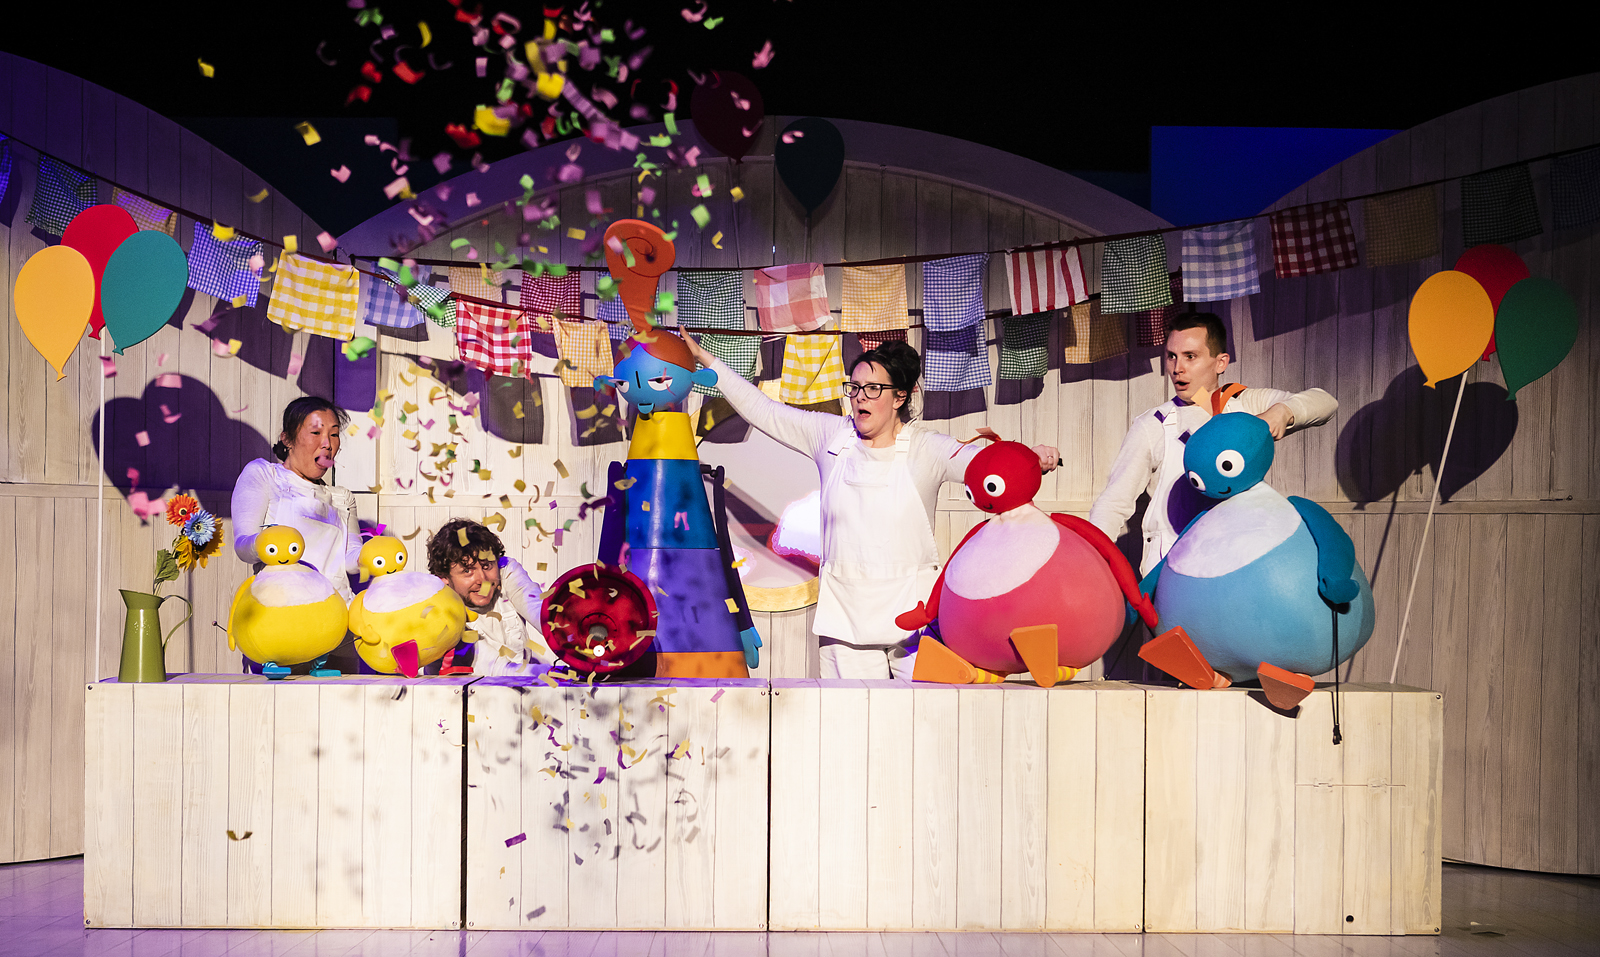 Twirlywoo puppets with confetti